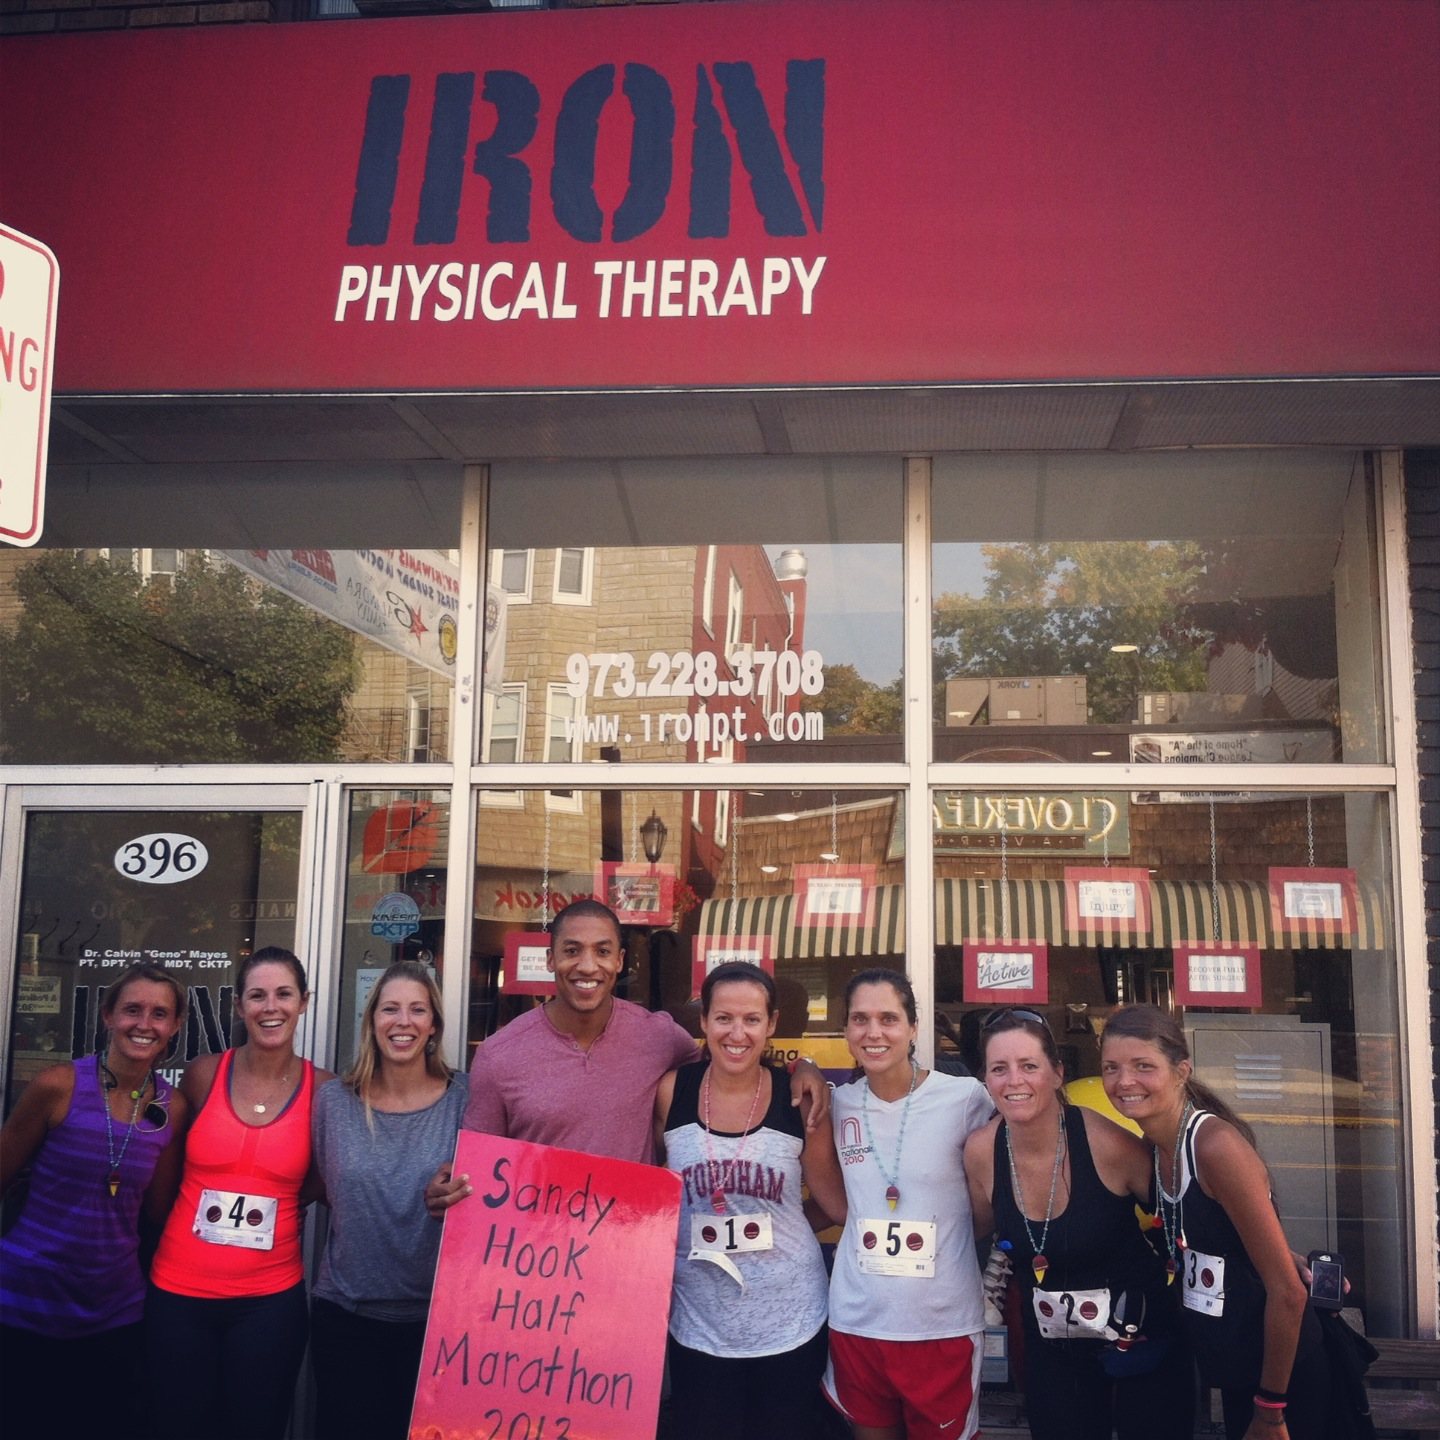 Iron Physical Therapy Half Marathon